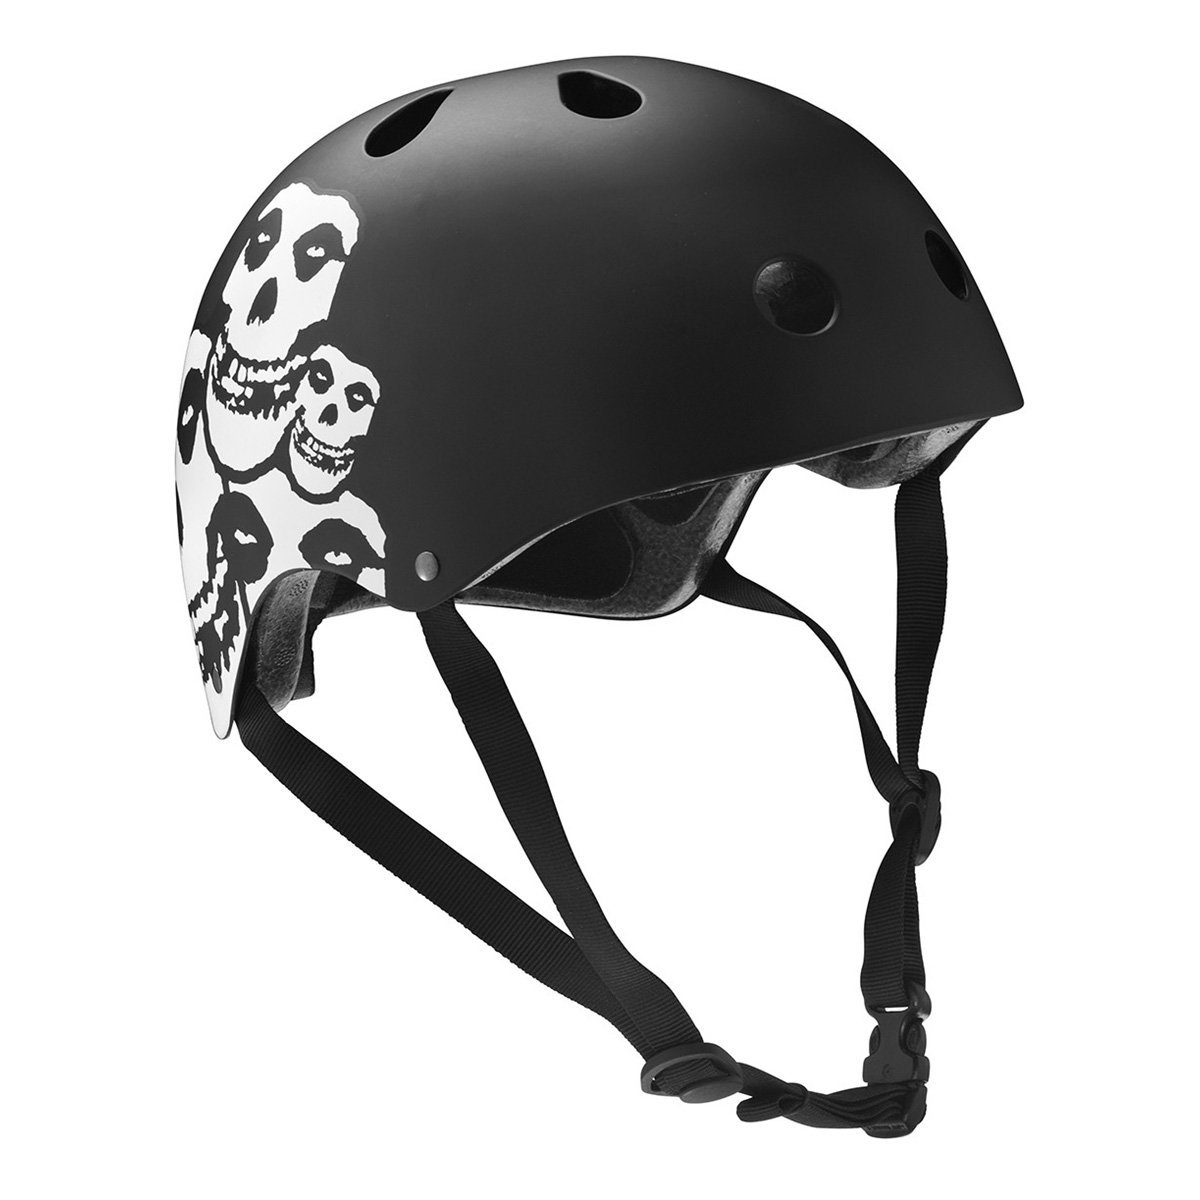 SixSixOne Bicycle Helmets